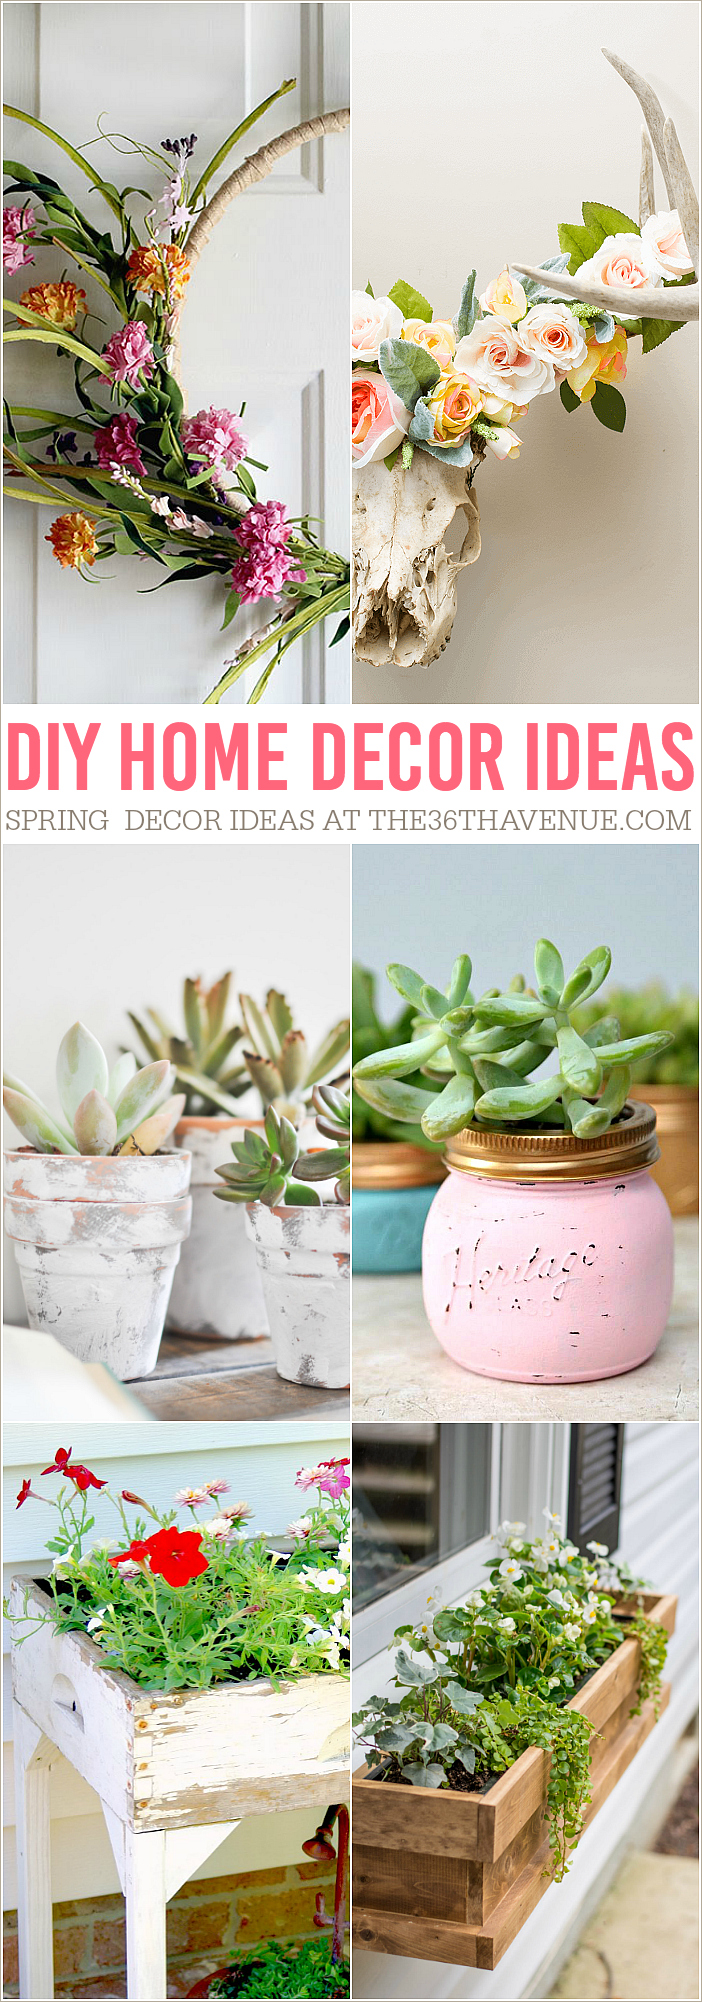 Spring DIY Home Decor Ideas that you can do.